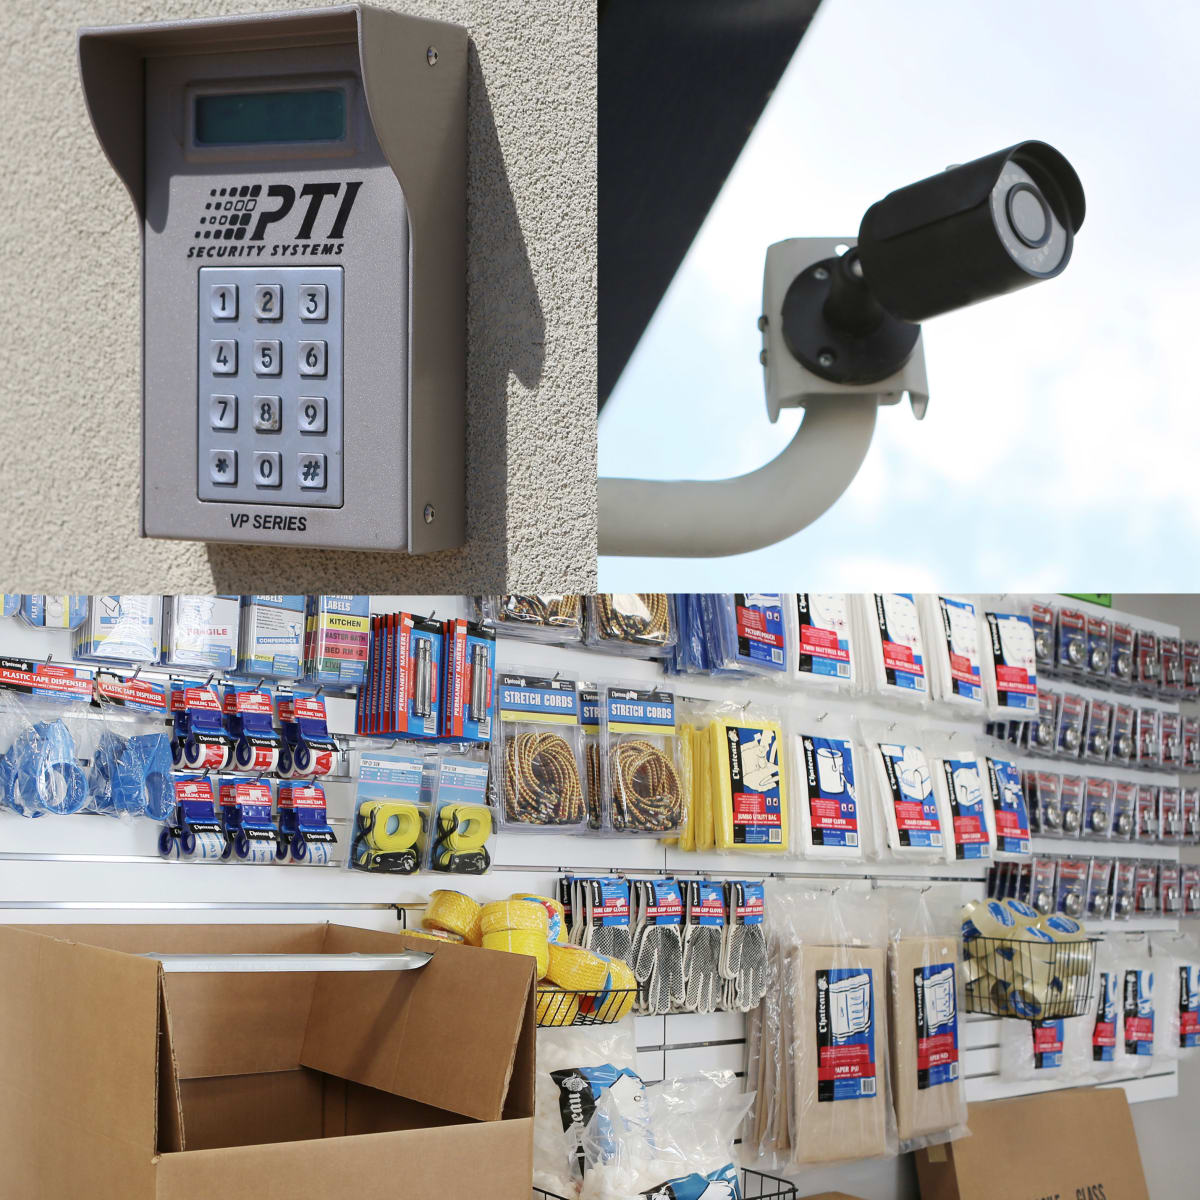 We provide 24 hour security monitoring and sell various moving and packing supplies at Midgard Self Storage in Statesboro, Georgia